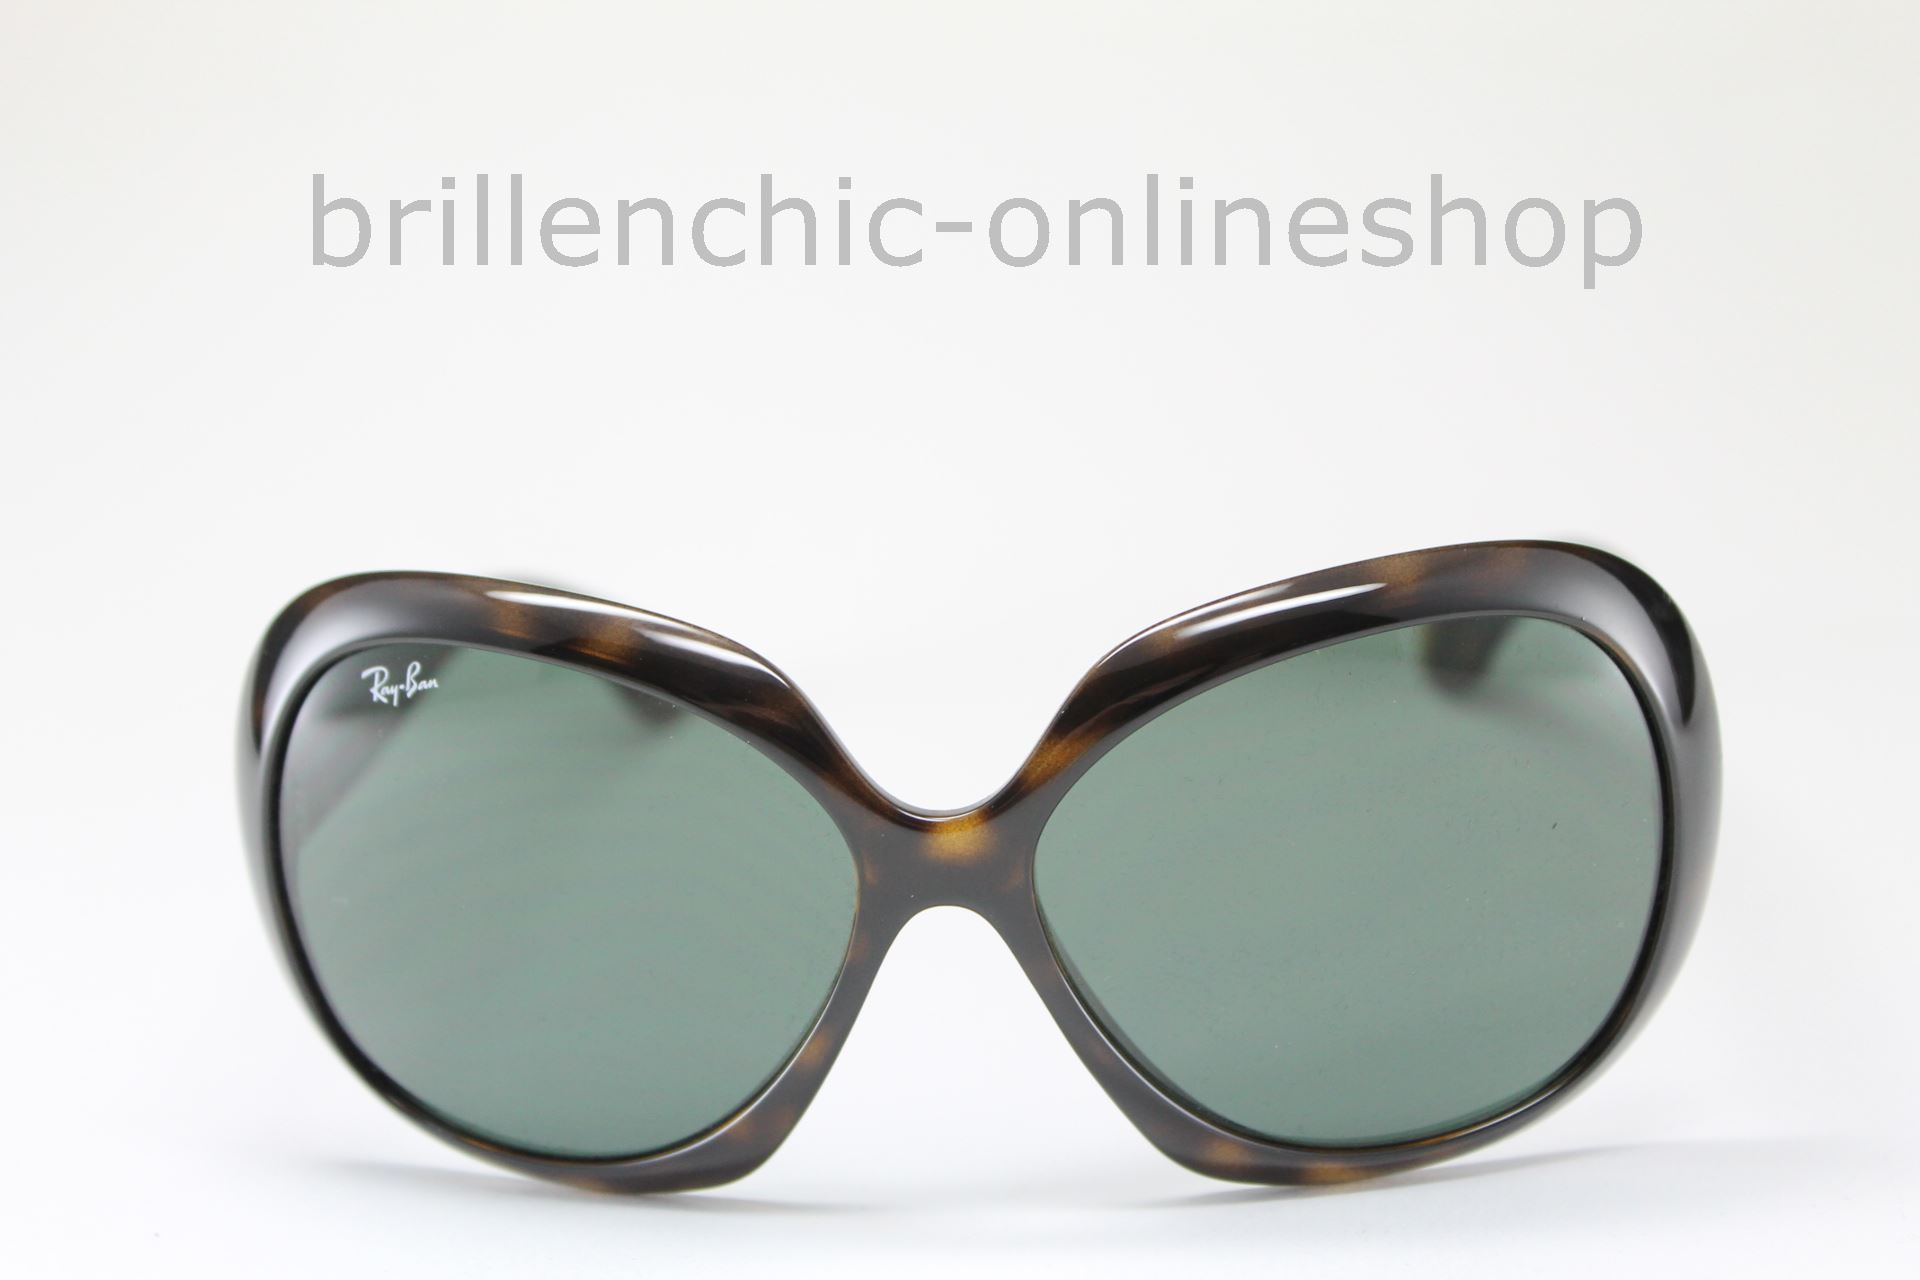 b66b7c9c4f Brillenchic-onlineshop in Berlin - Ray Ban JACKIE OHH II RB 4098 710 ...